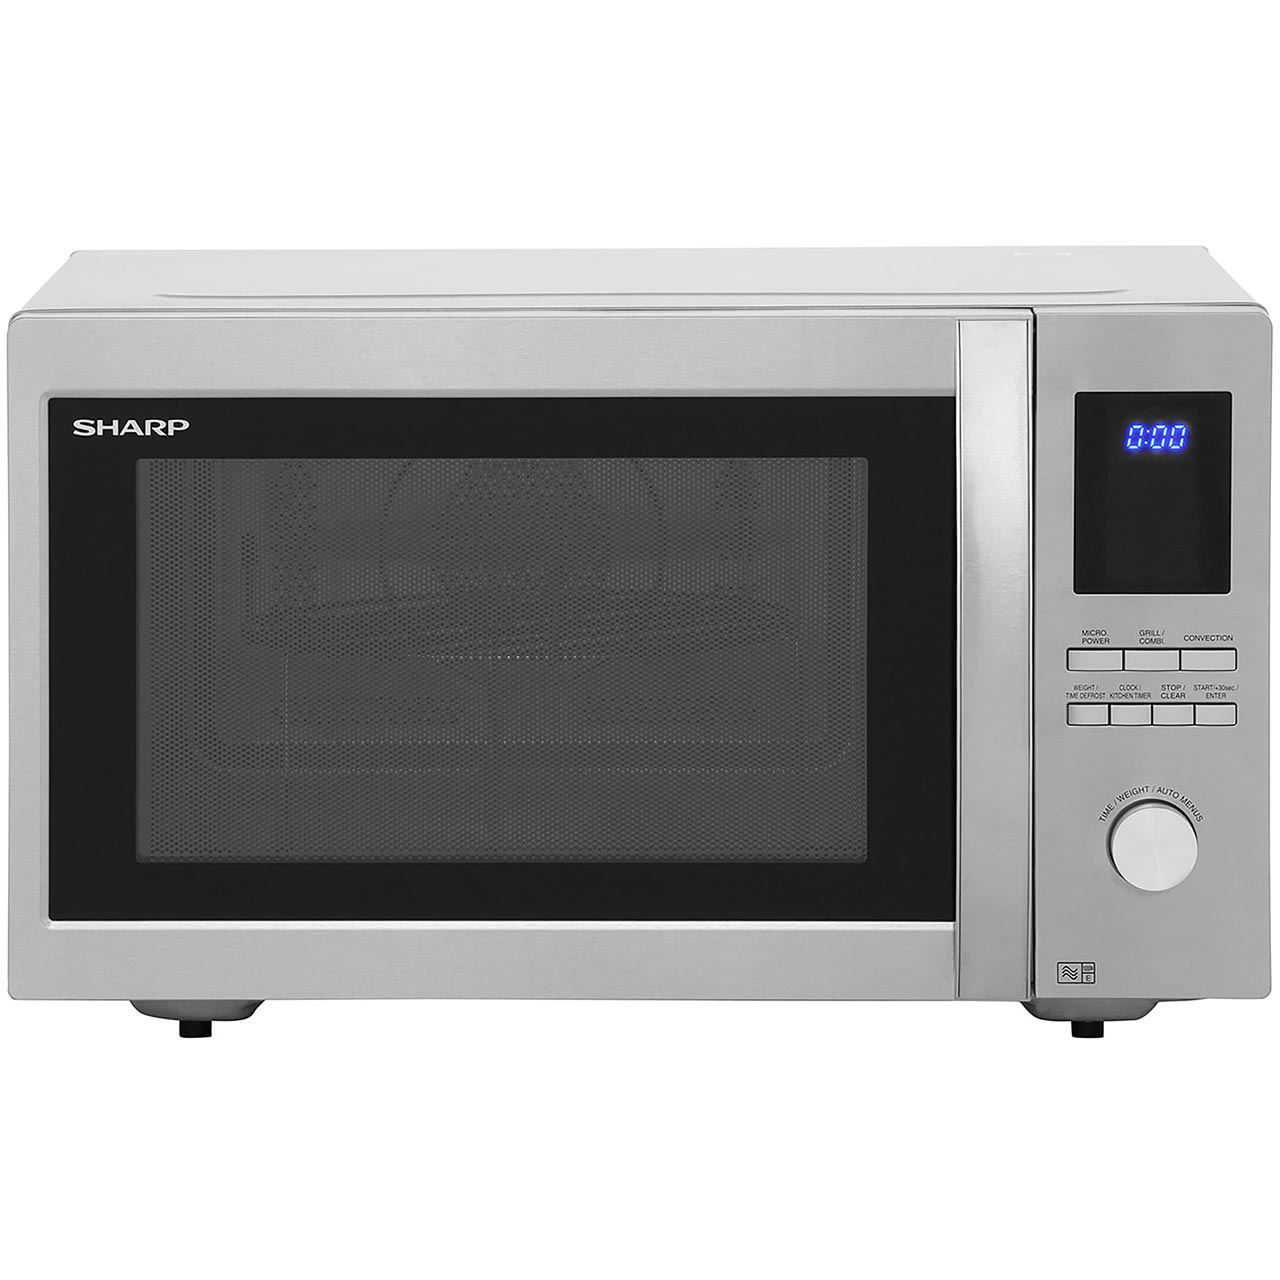 kmart homemaker convection oven manual